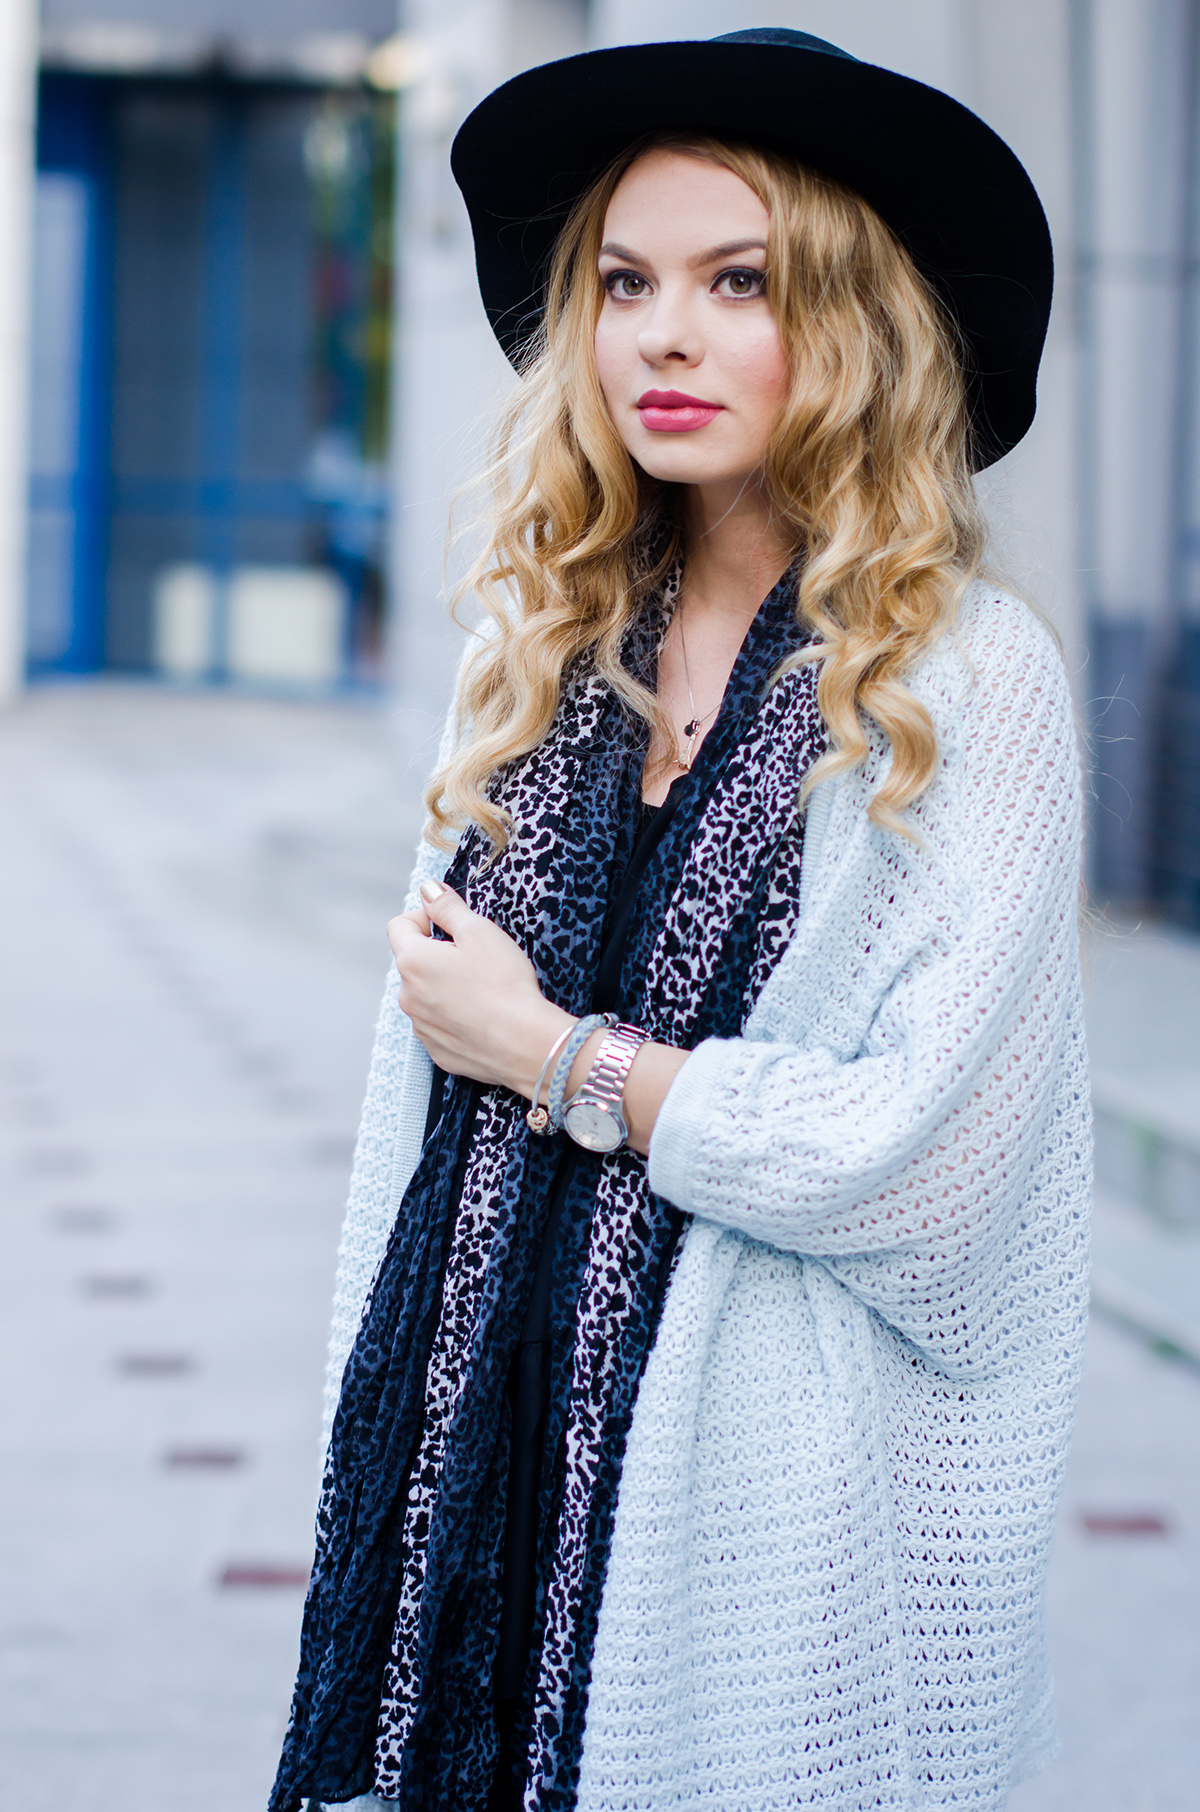 vero-moda-blue-fluffy-cardigan-black-outfit-hat-curls (7)